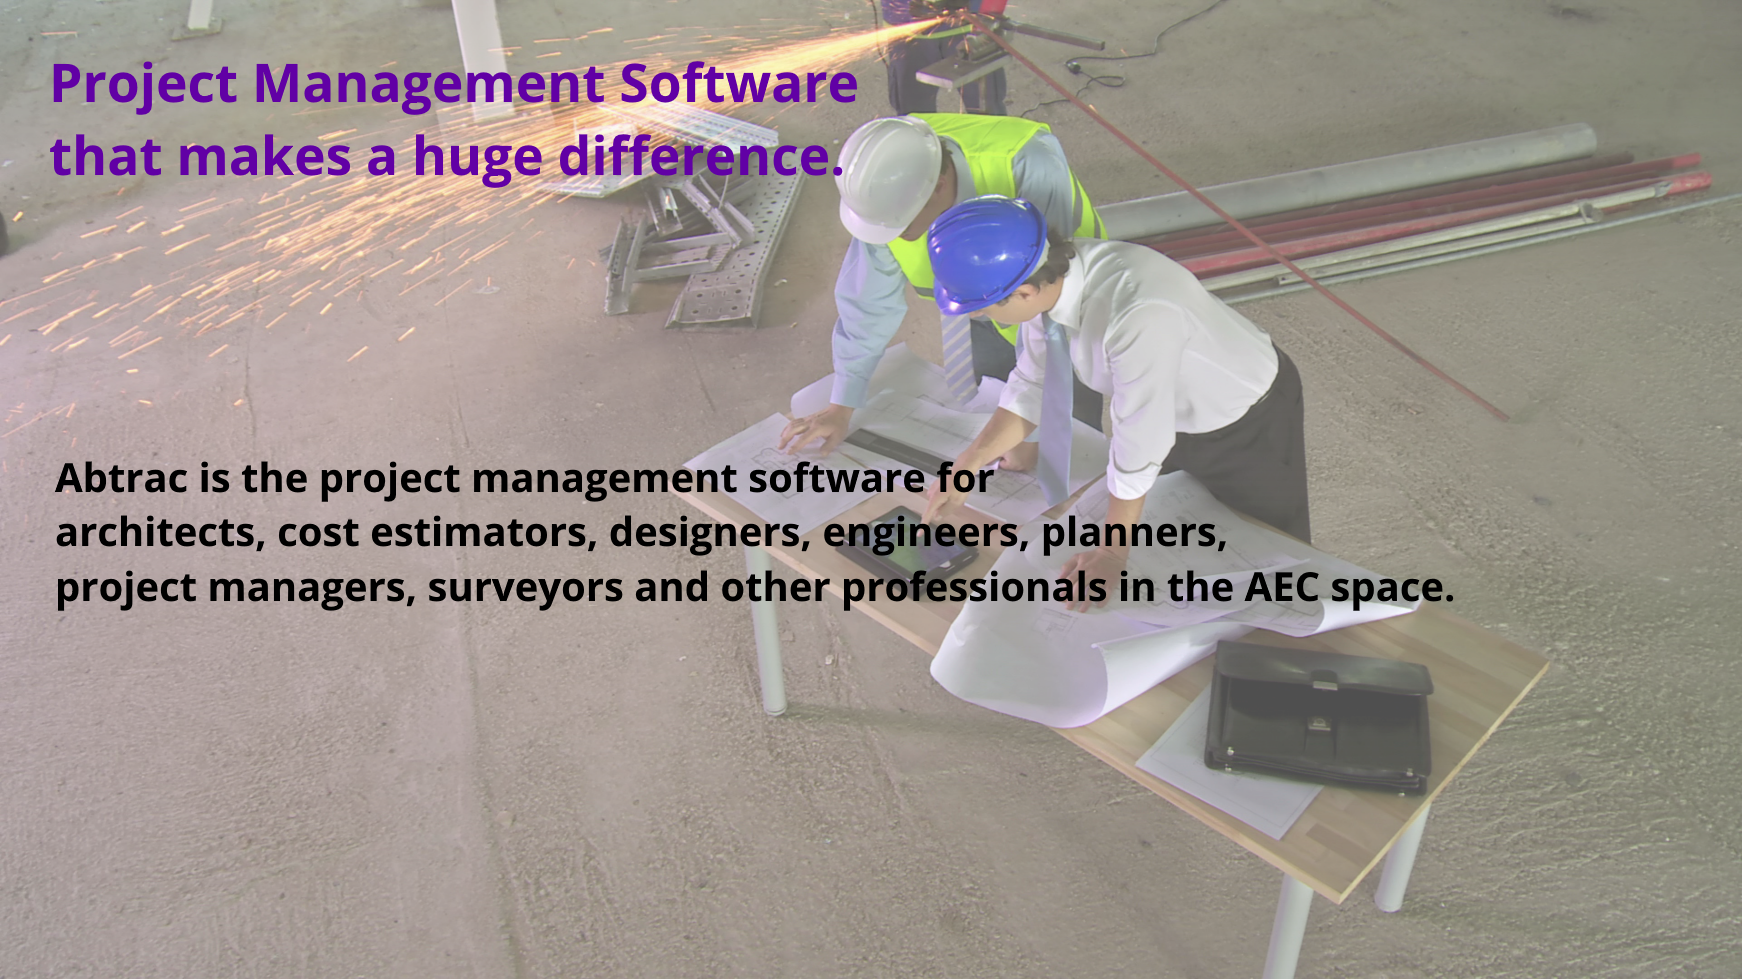 Abtrac Project Management Software